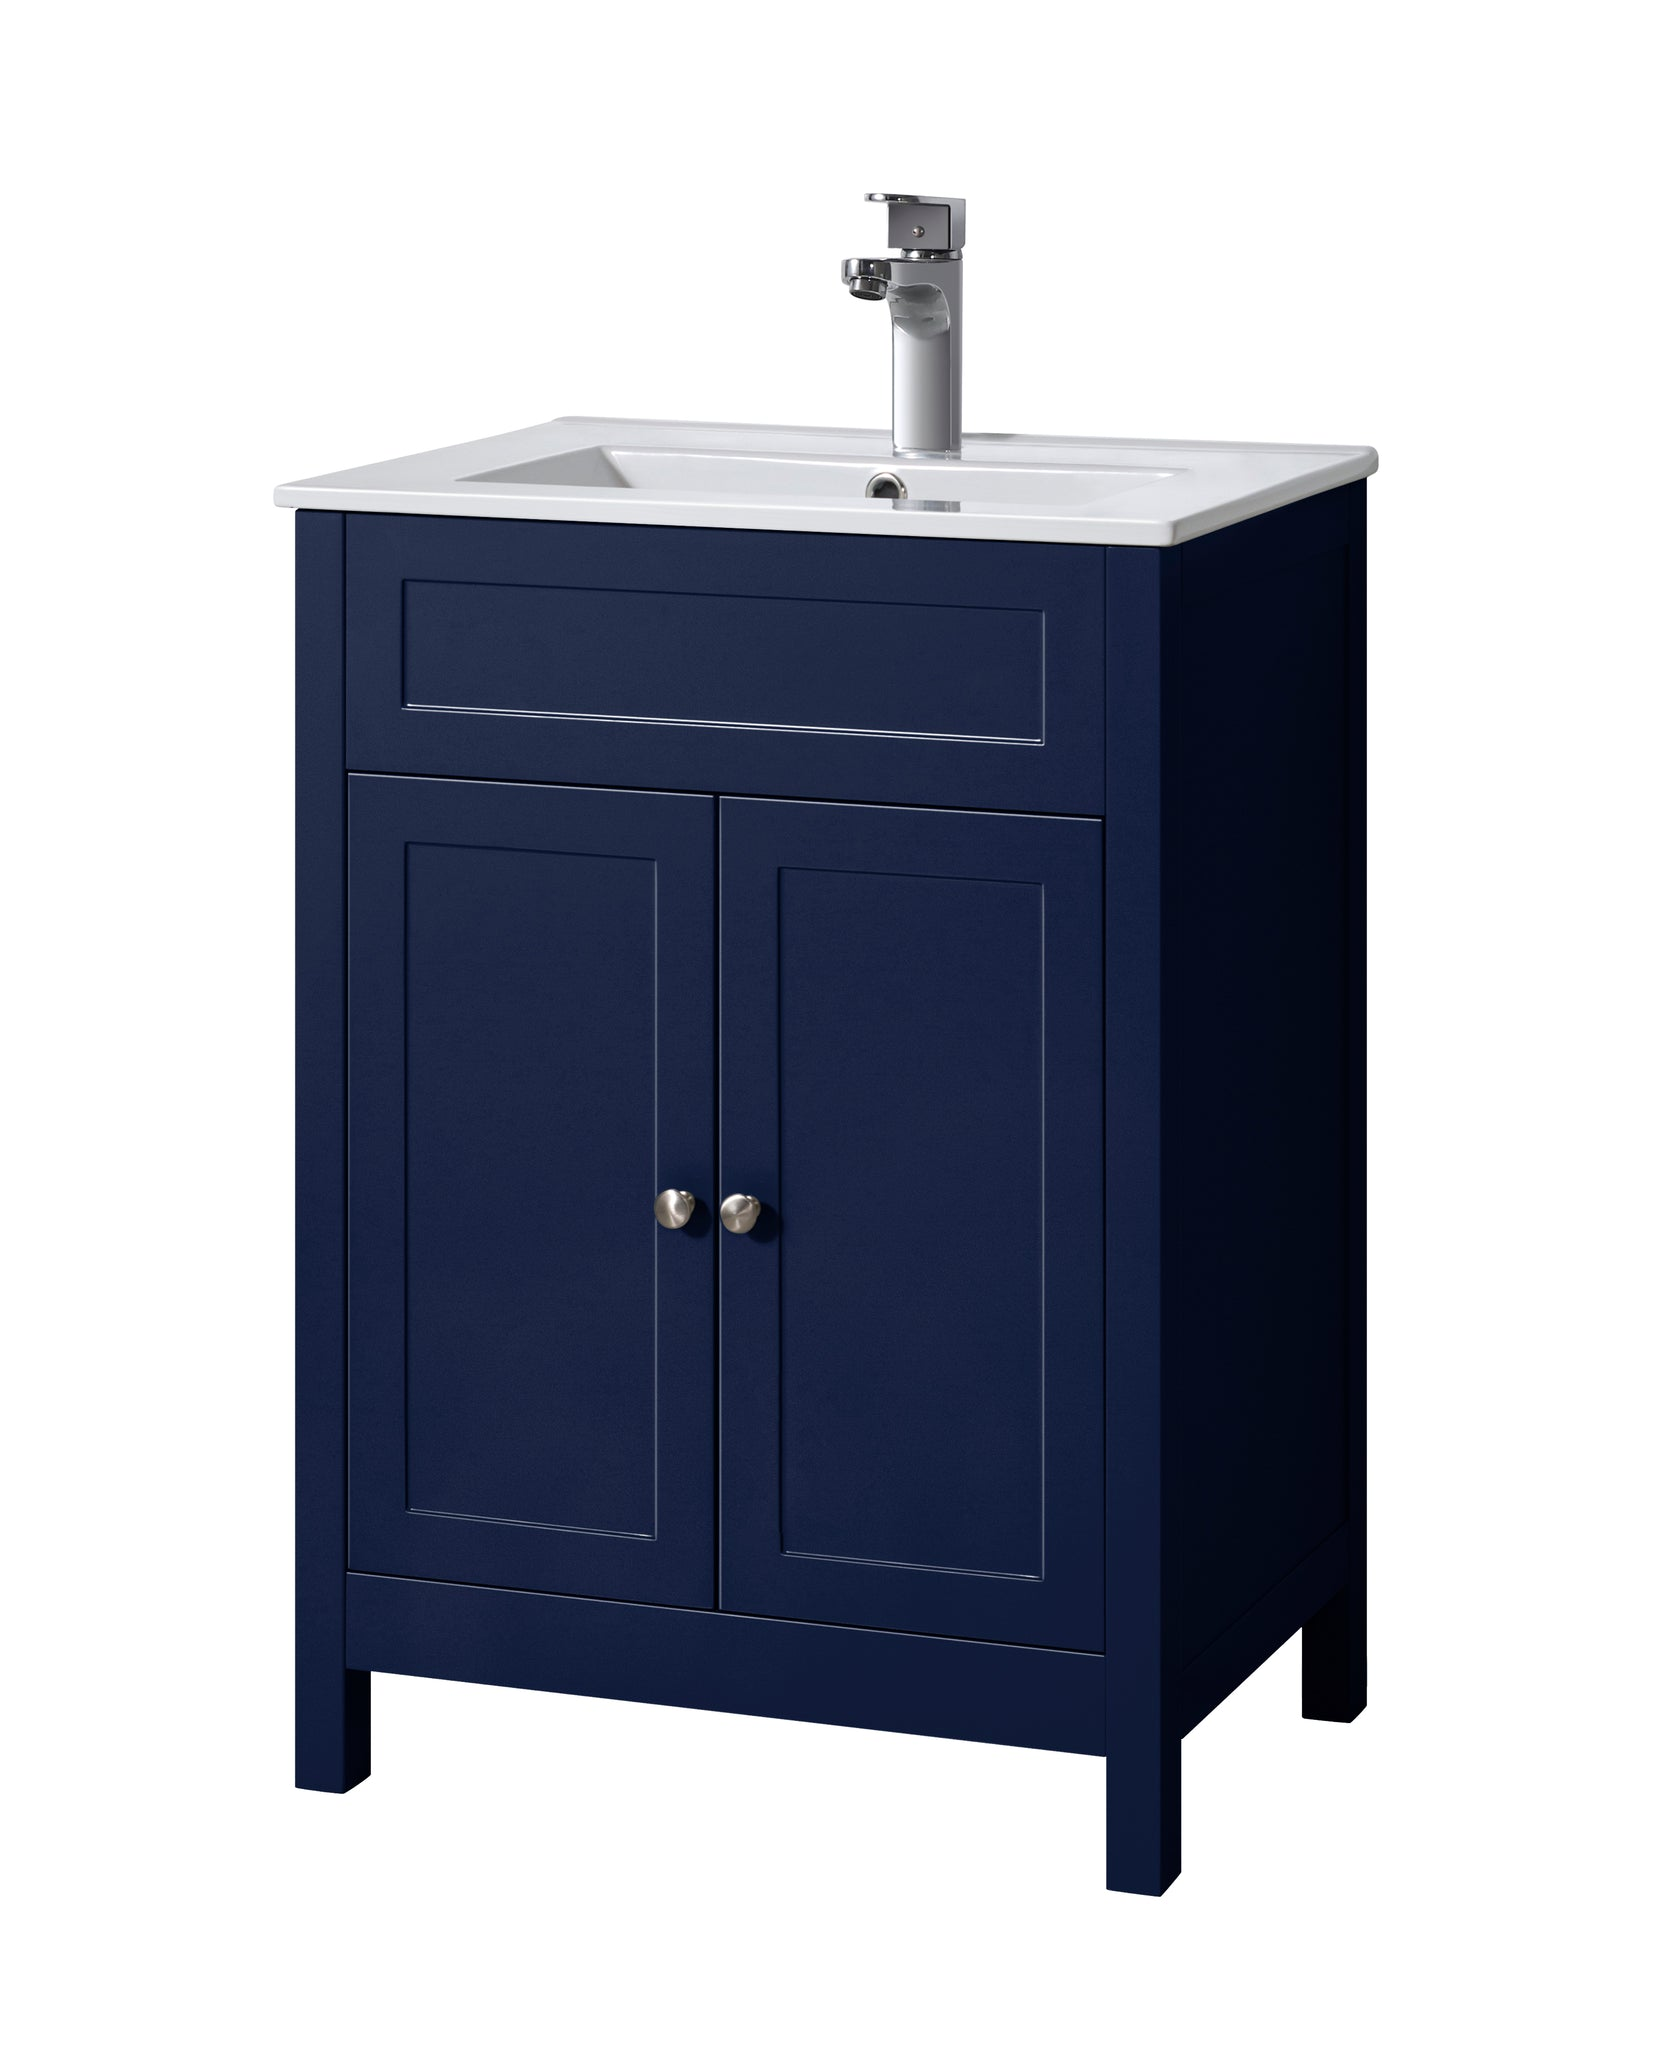 Keenware Kvu 053 Chelsea Shaker Style Sapphire Blue Vanity Unit With T Eurogenco